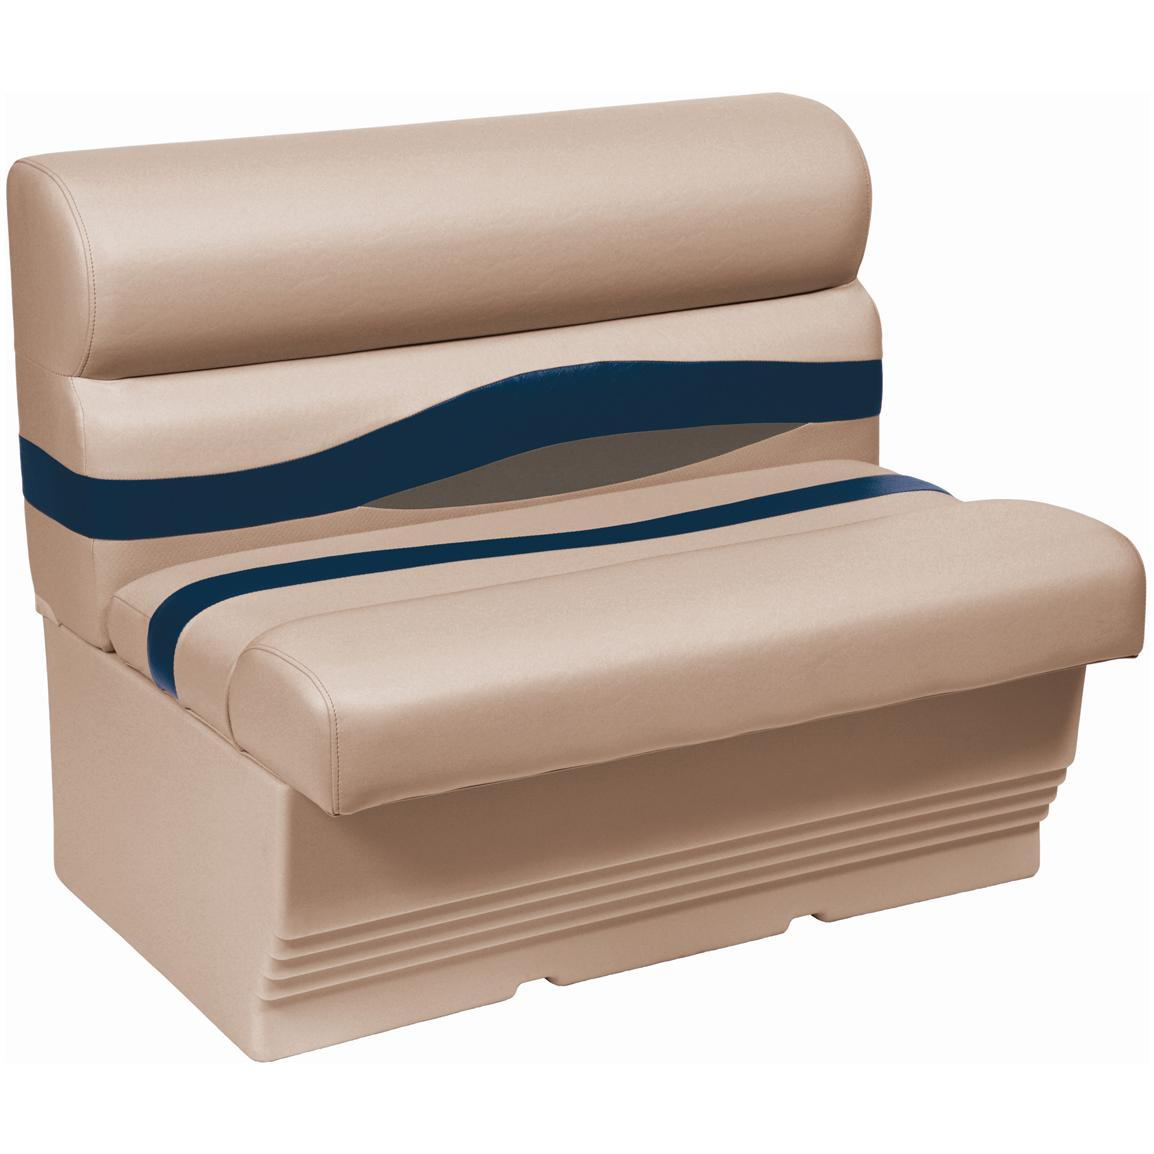 "Wise® Premier 45"" Pontoon Bench Seat, Color D - Mocha Java Punch / Midnight / Rock Salt"